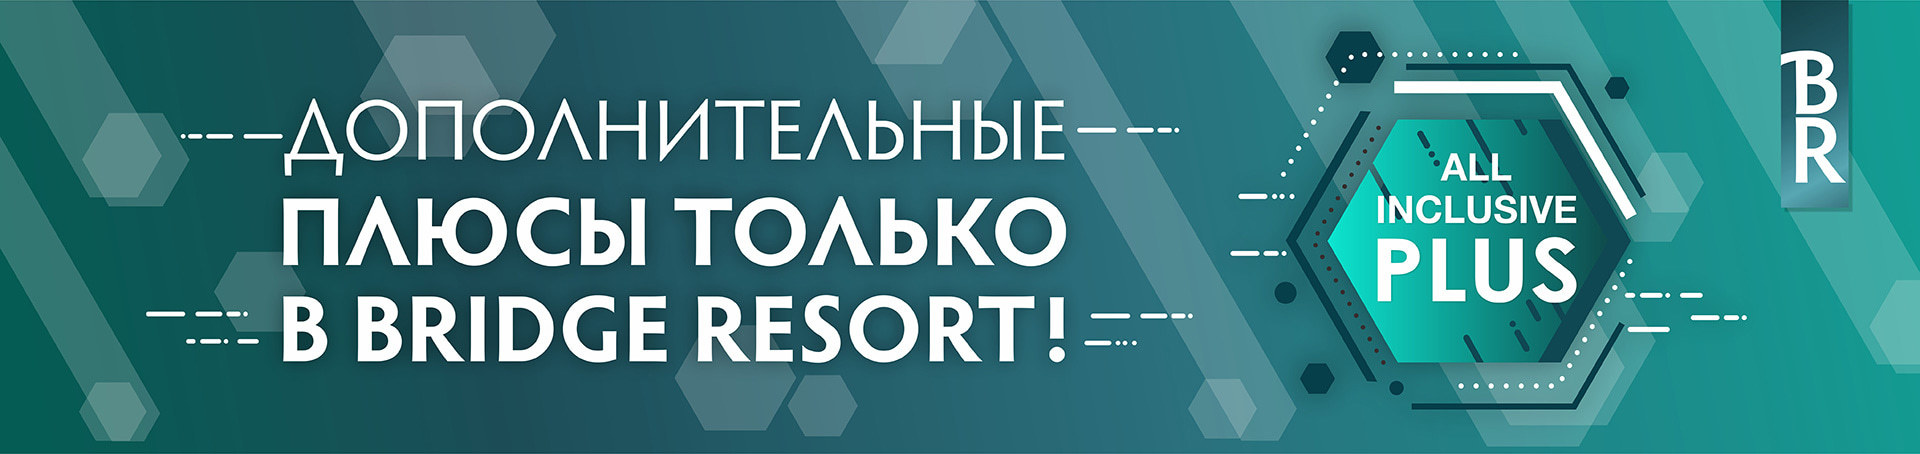 2020 Bridge Resort Сочи